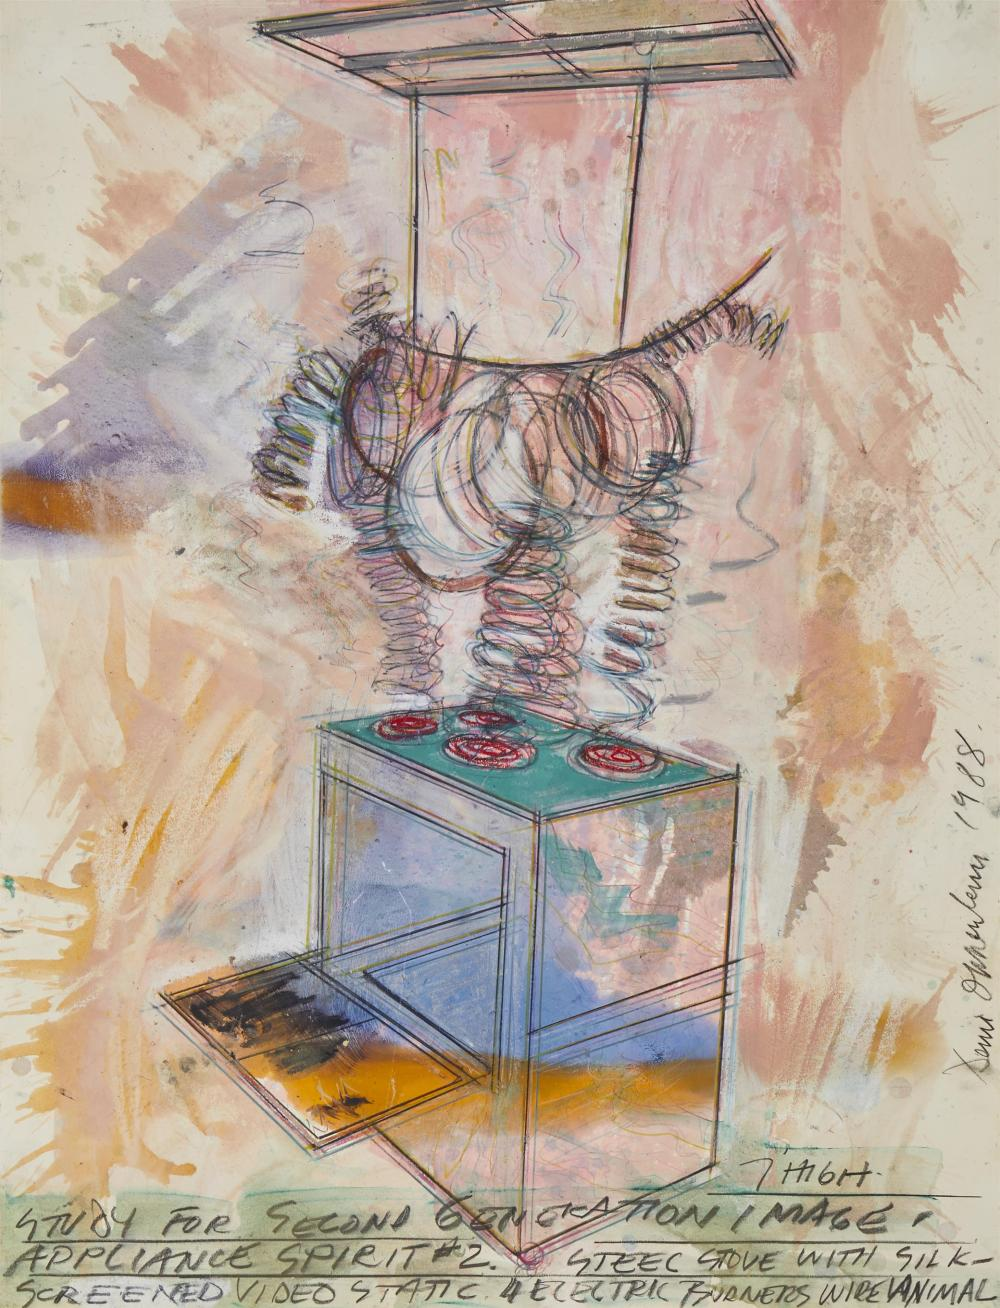 "Dennis Oppenheim, (1938-2011, American), ""Study for Second Generation Image Appliance Spirit #2,"" 1988, Mixed media on paper under Plex"